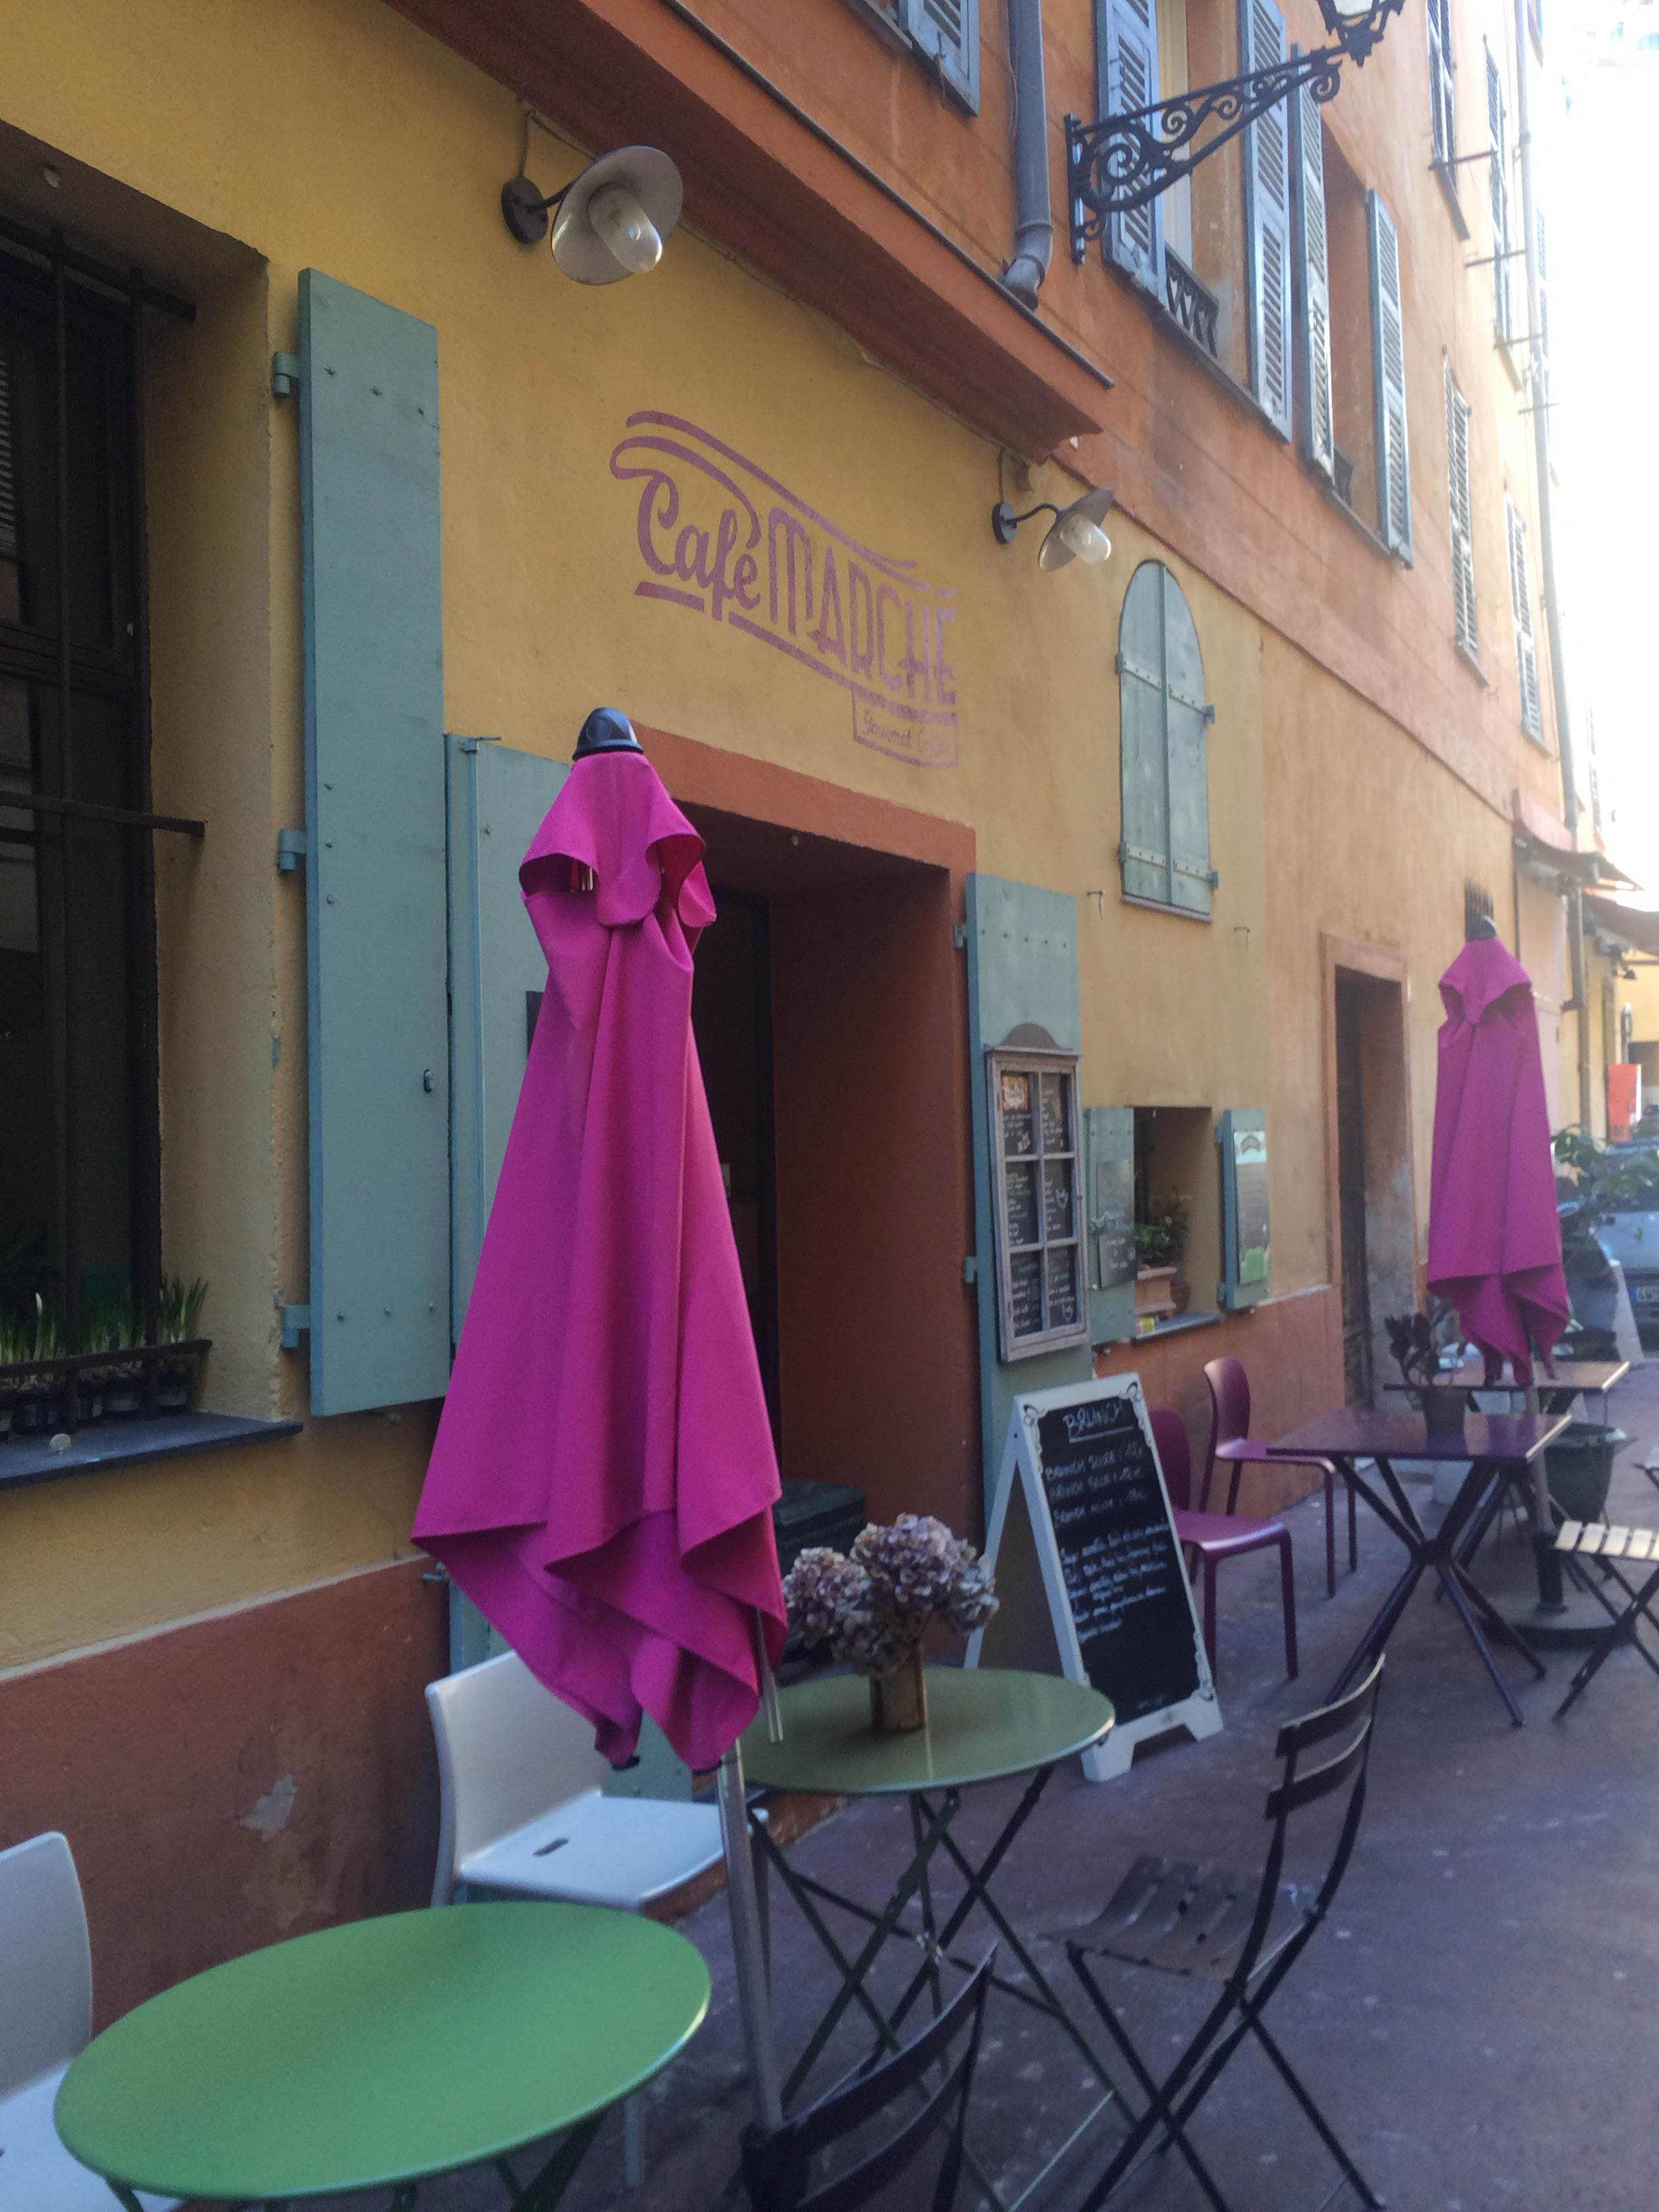 Cute Cafes dotted around the Old Town